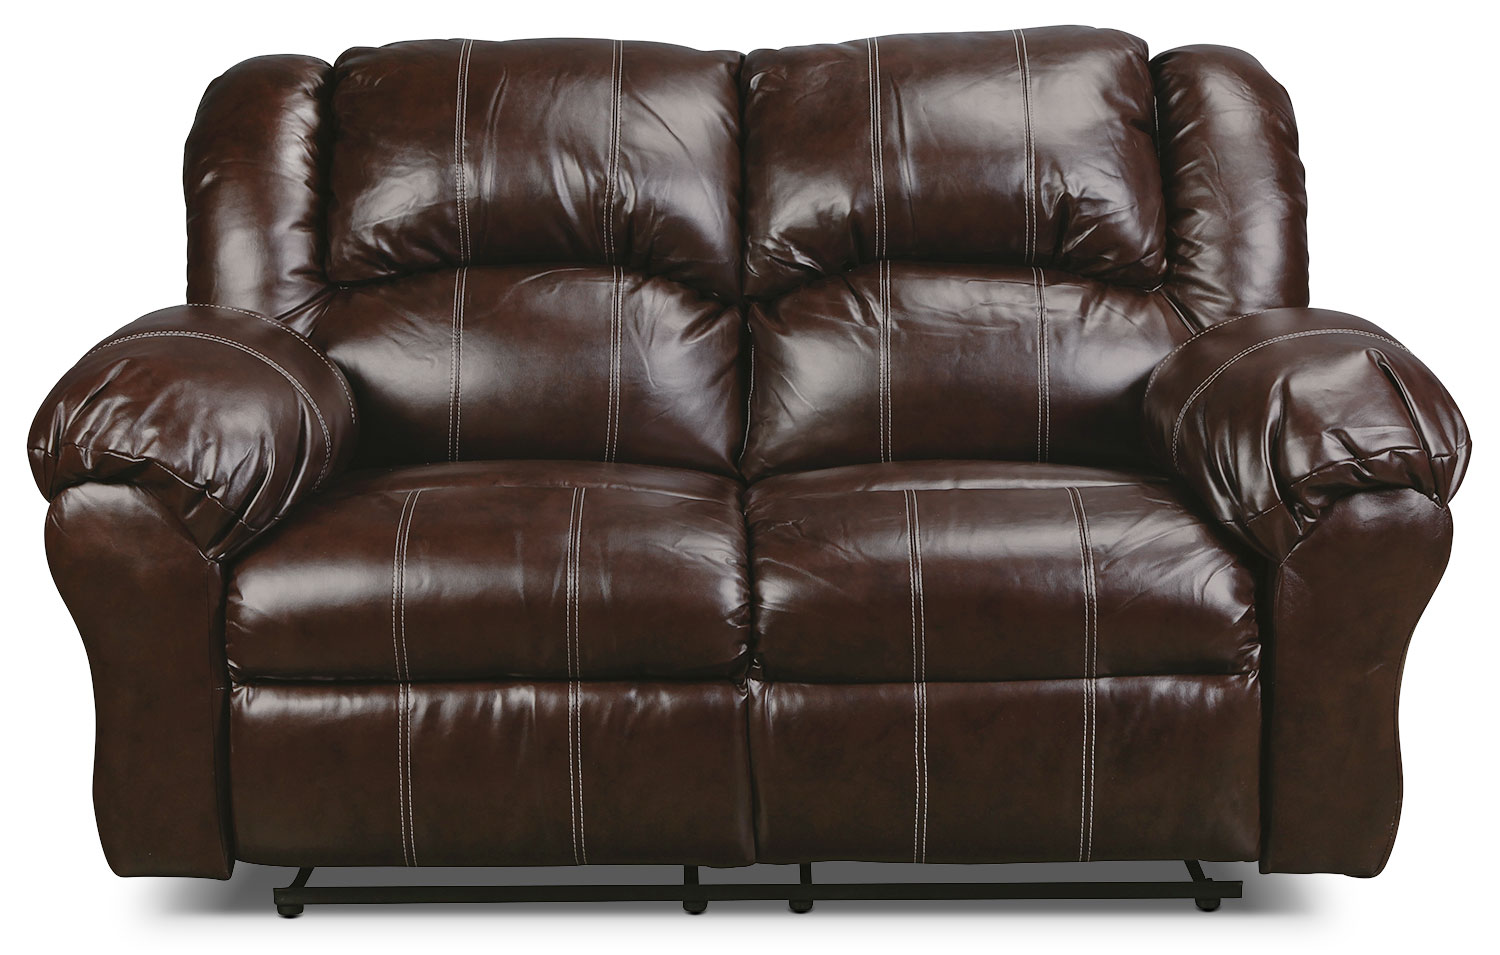 Decker Reclining Loveseat - Brown